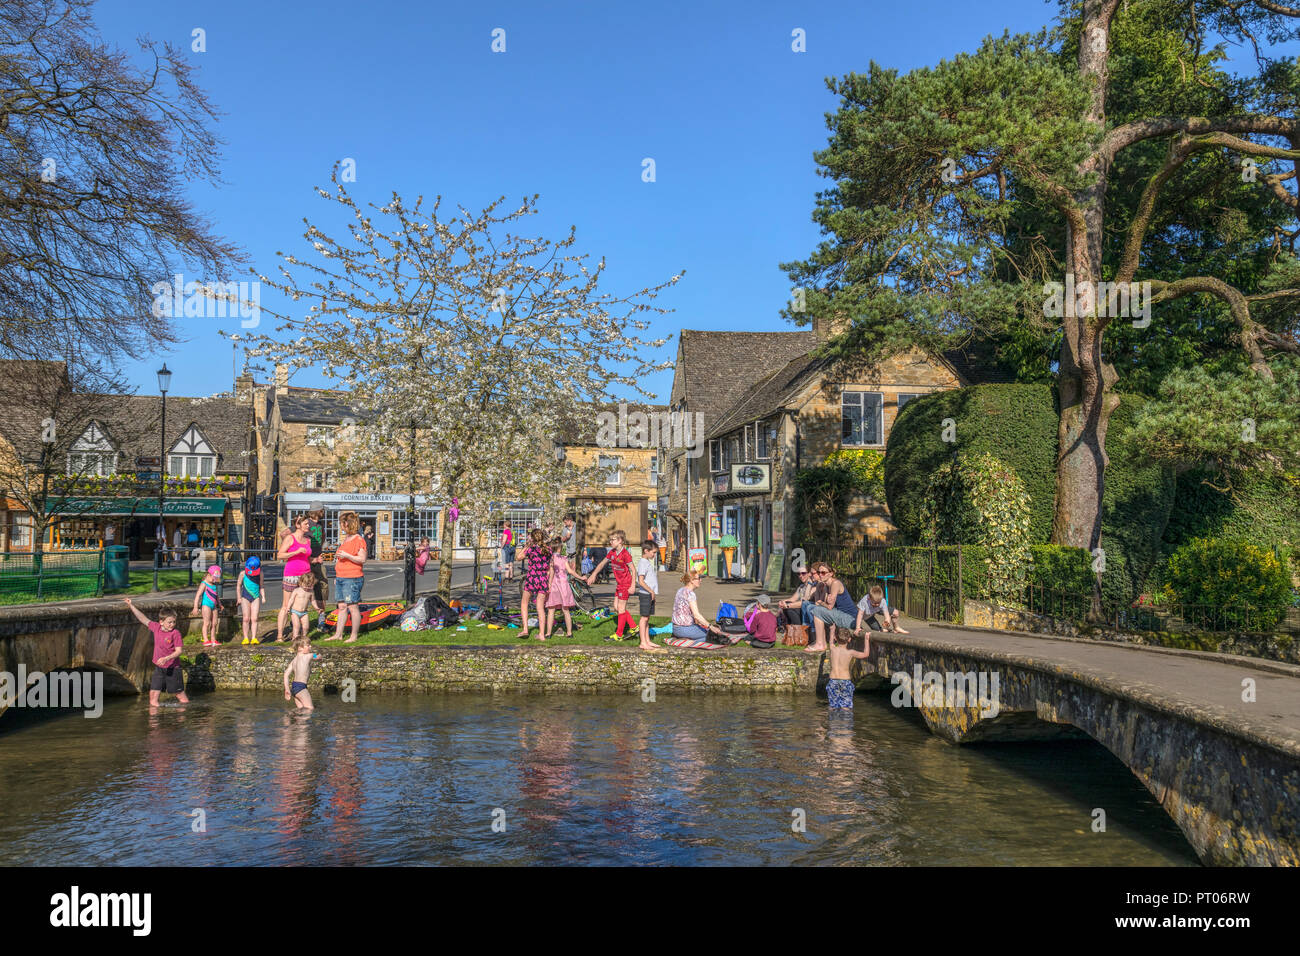 Bourton-on-the-Water, Gloucestershire, Cotswolds, UK, Europe - Stock Image